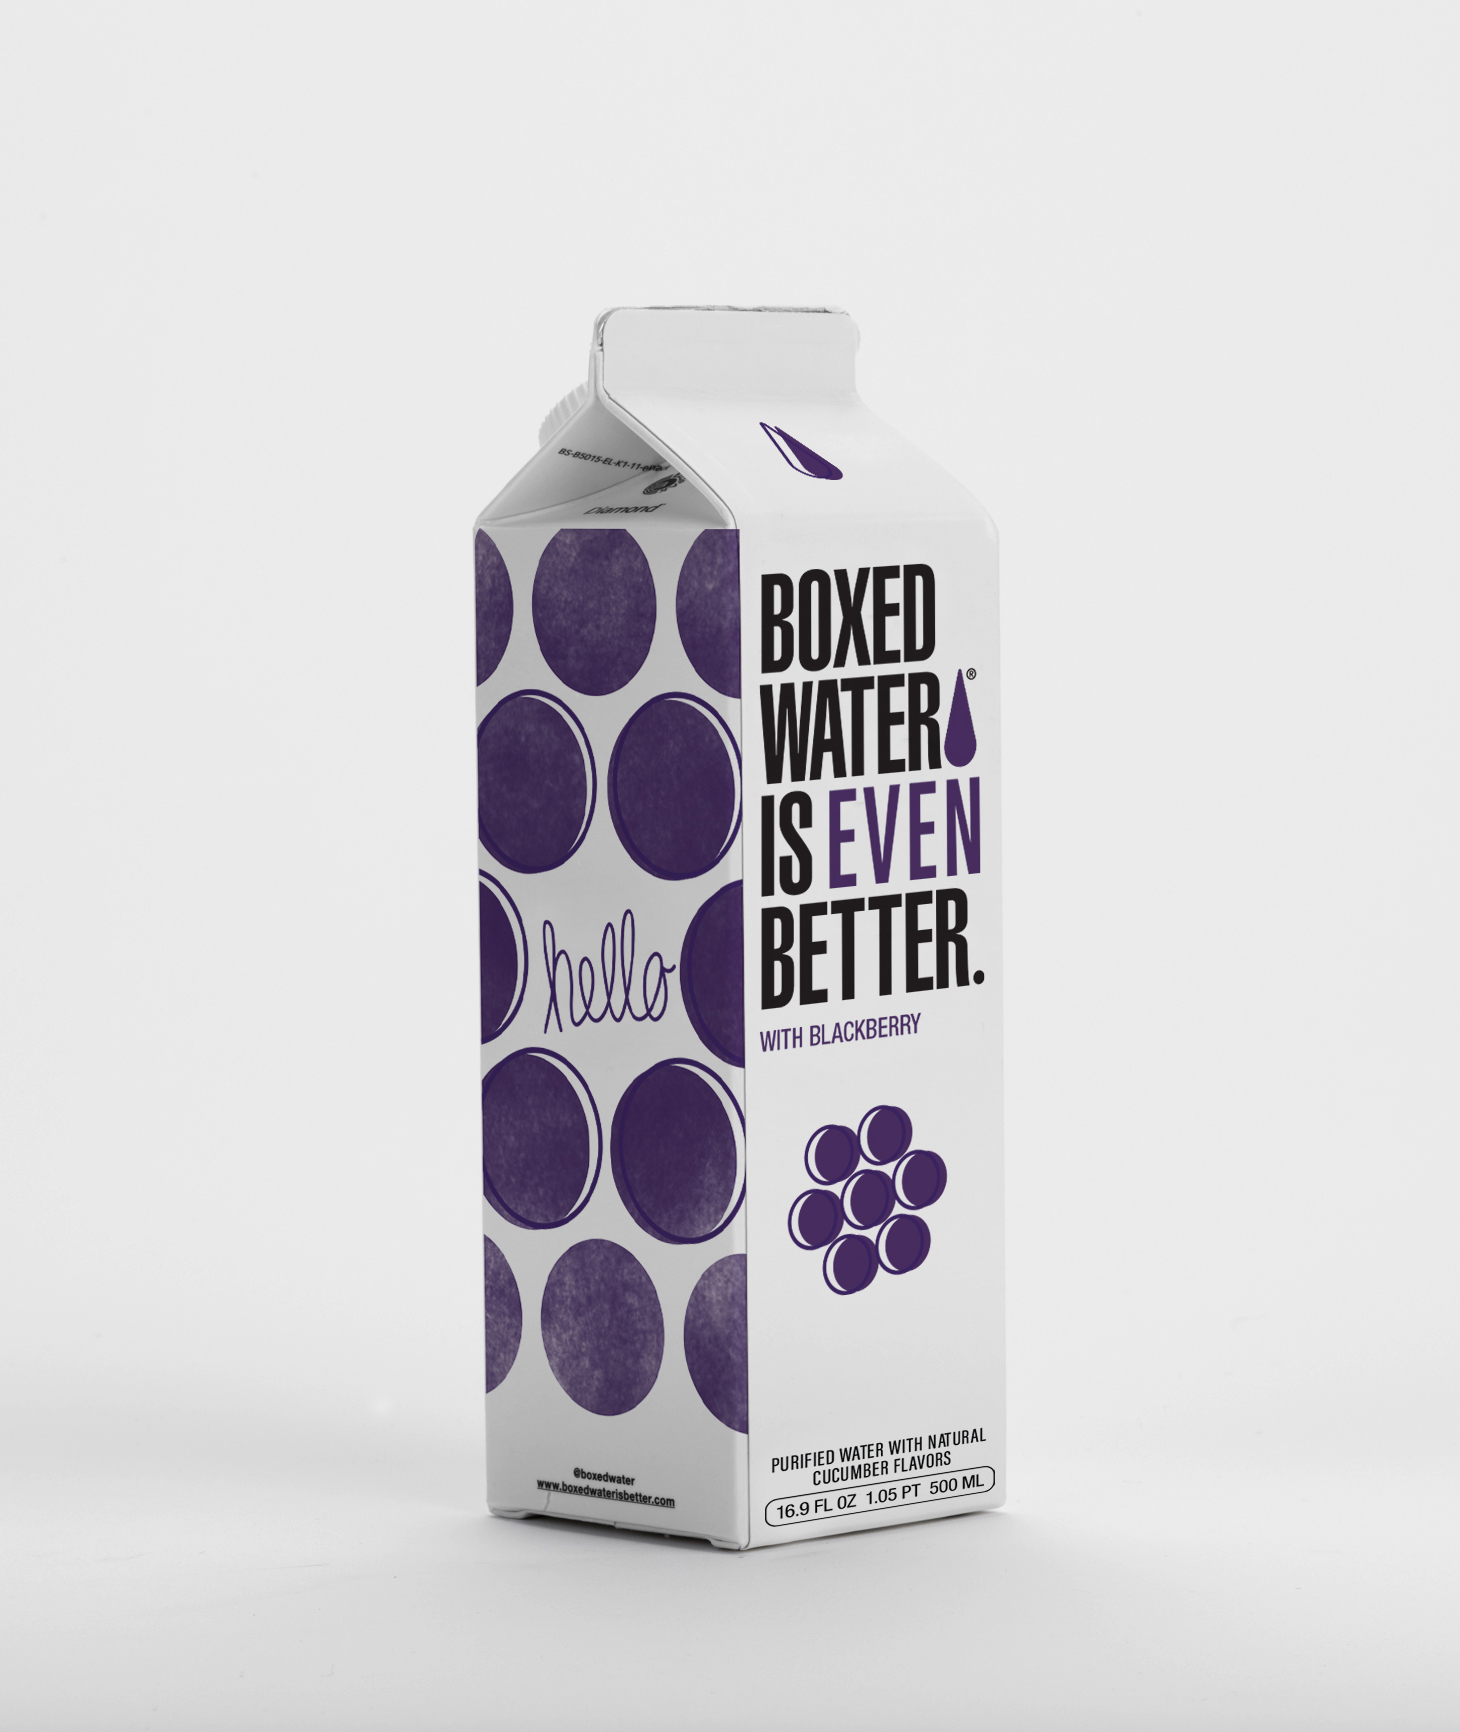 Boxed Water Is Even Better Blackberry